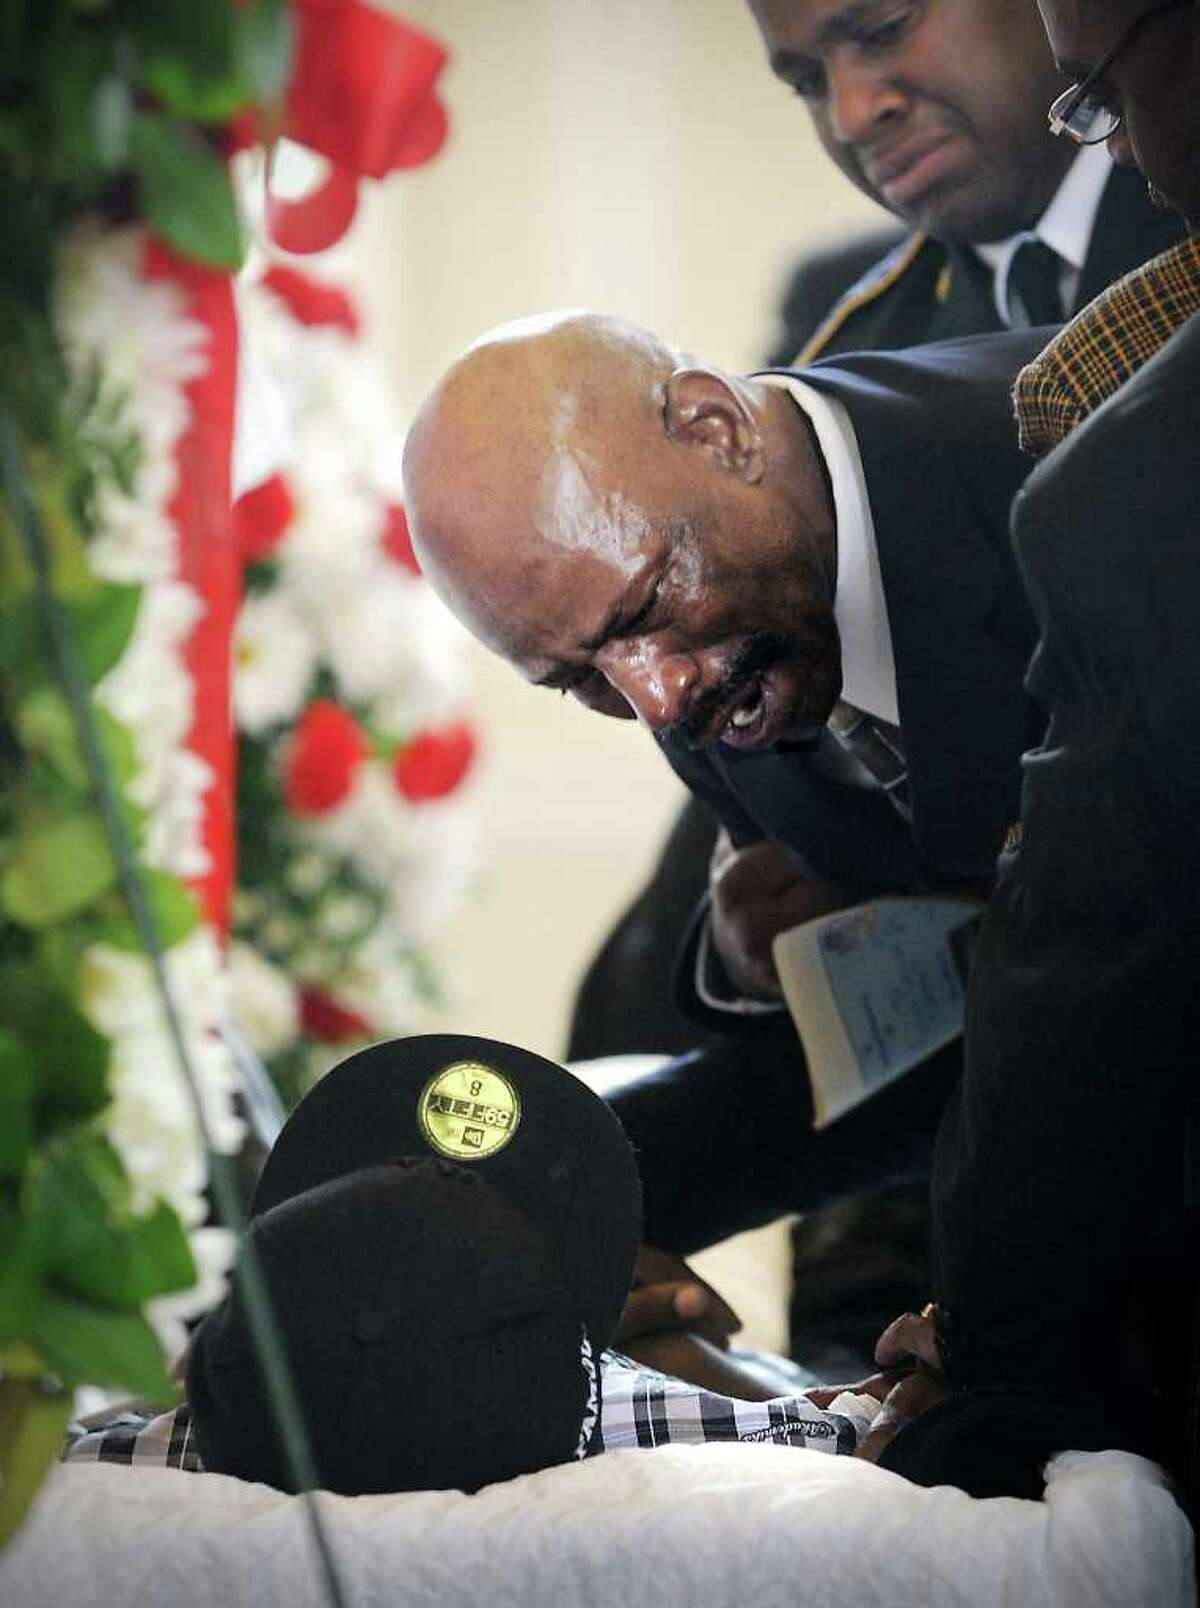 """Amos Brown, Sr. stands by the casket of his son Amos """"A.J."""" Brown, who was gunned down in Norwalk earlier this month, during the funeral at First Congregational Church in Norwalk, Conn. on Tuesday August 24, 2010."""